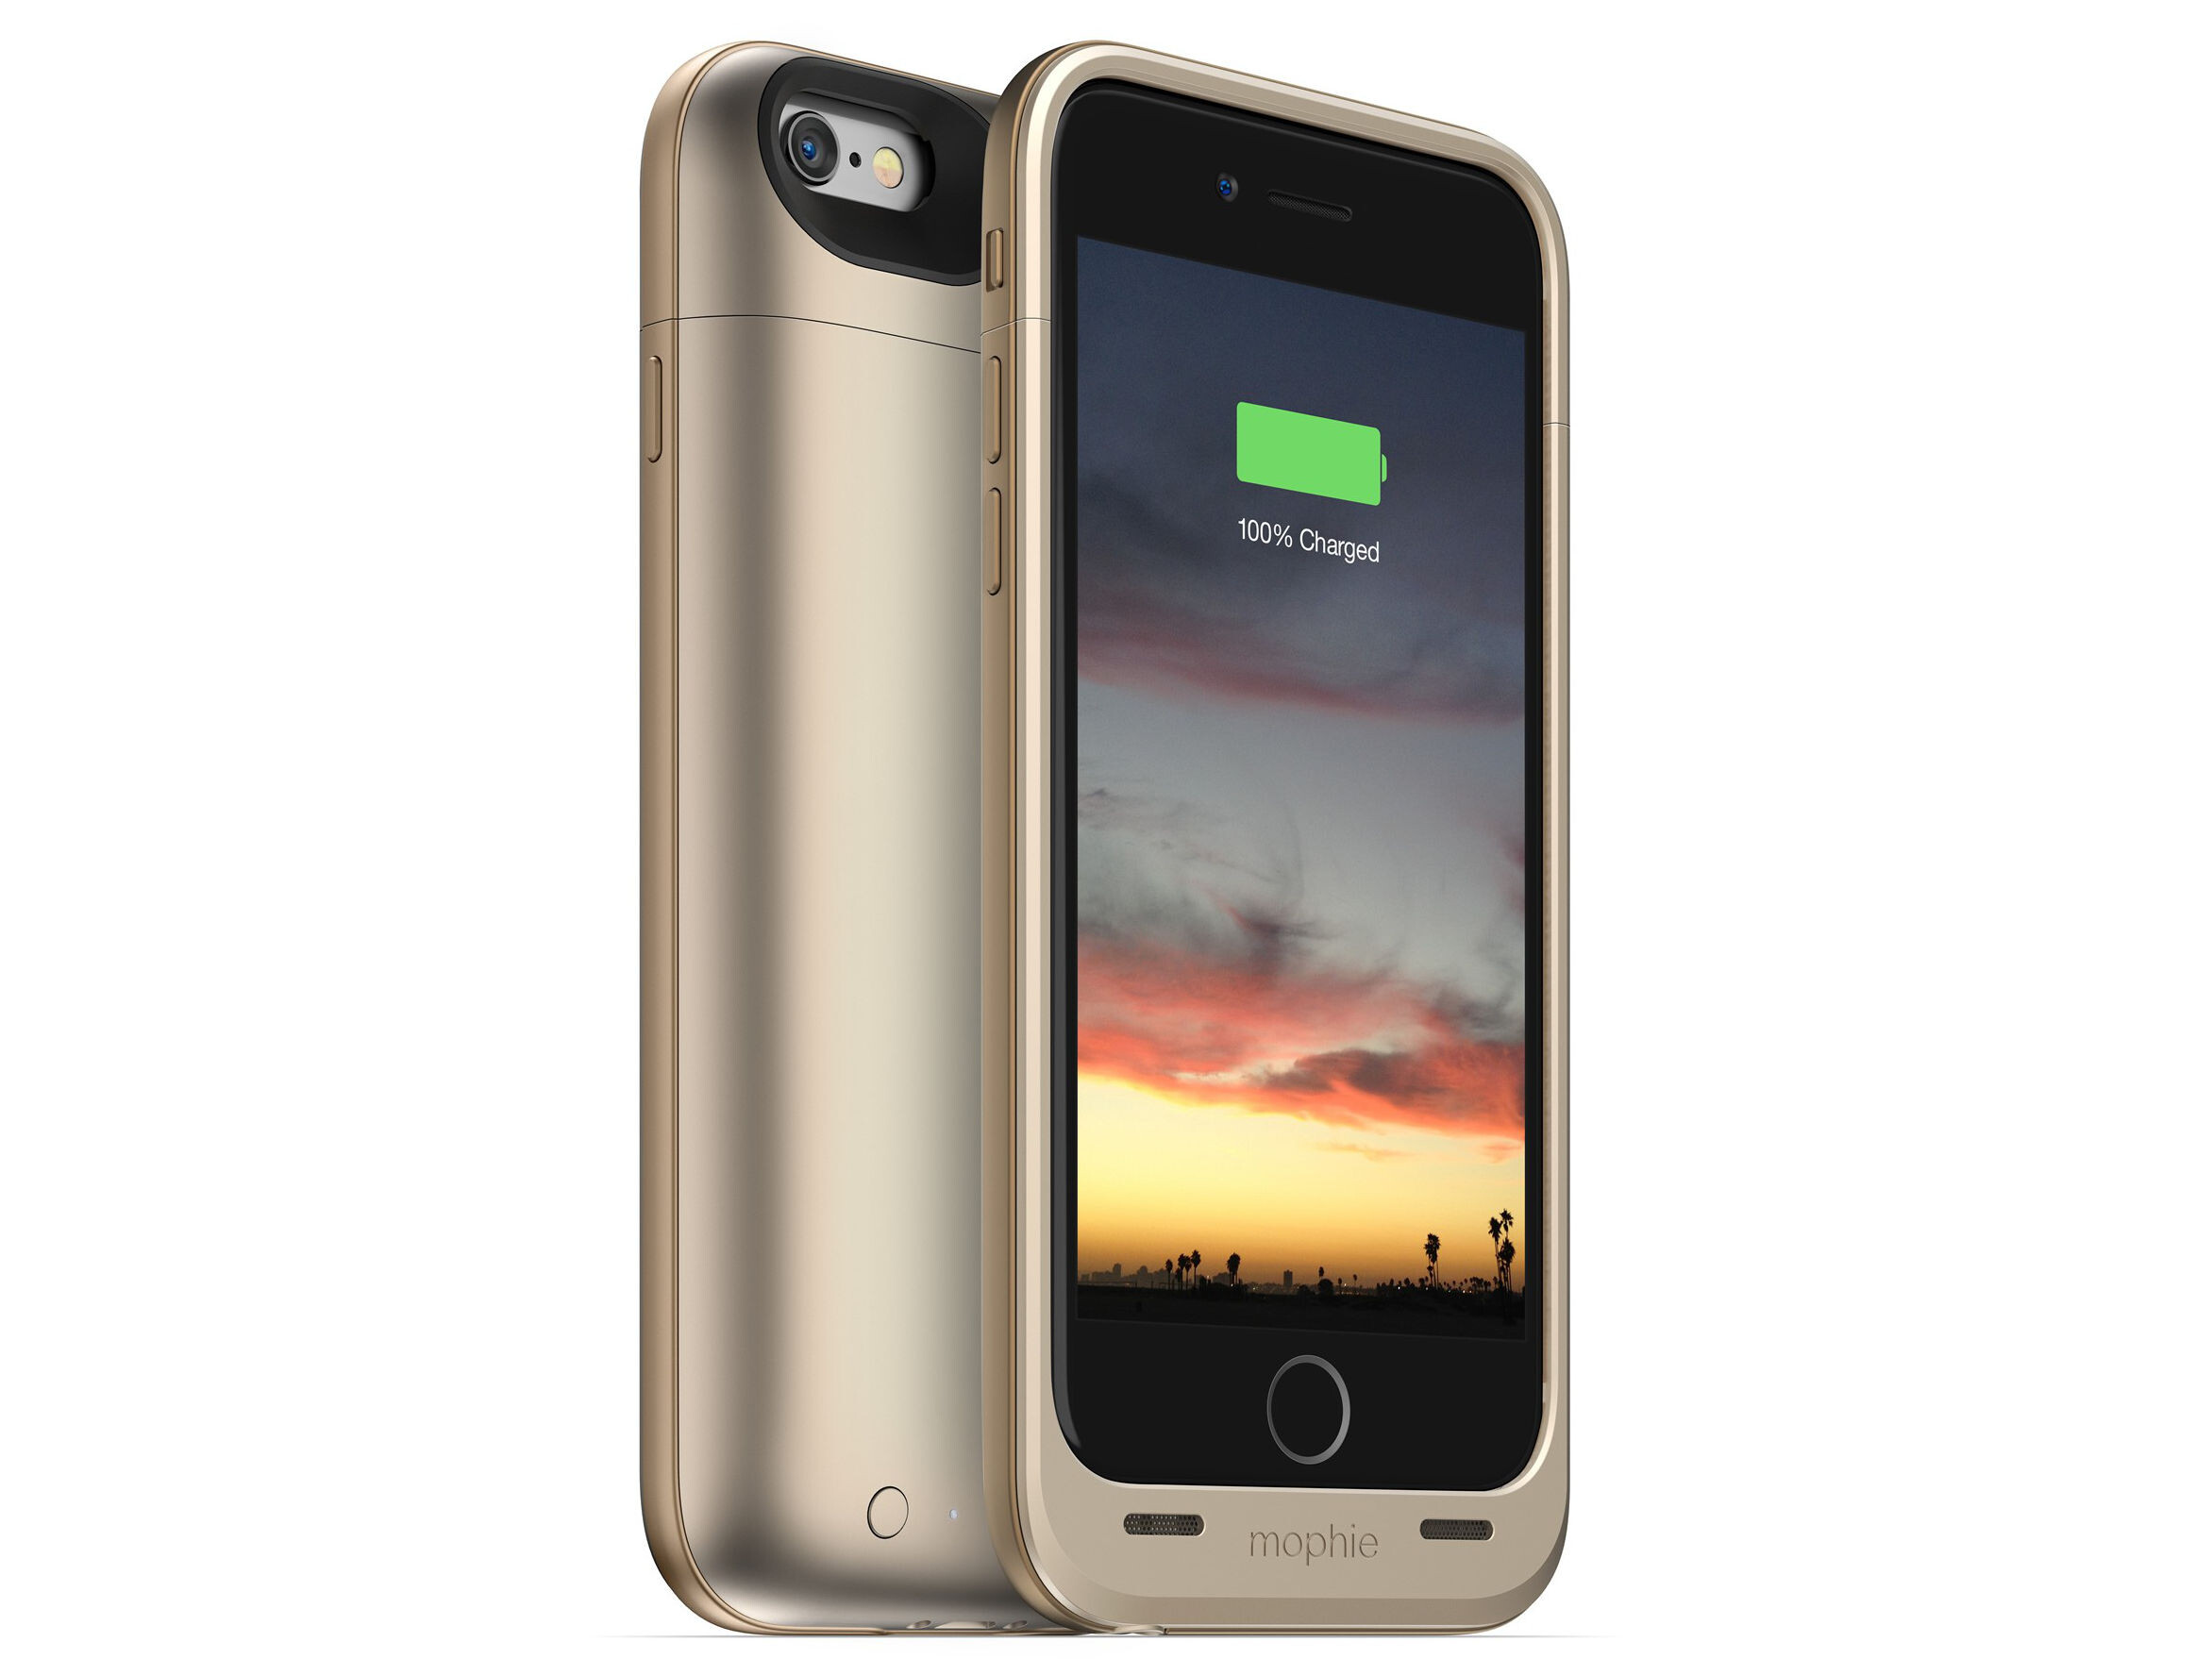 Best Apple iPhone 6s extended battery cases